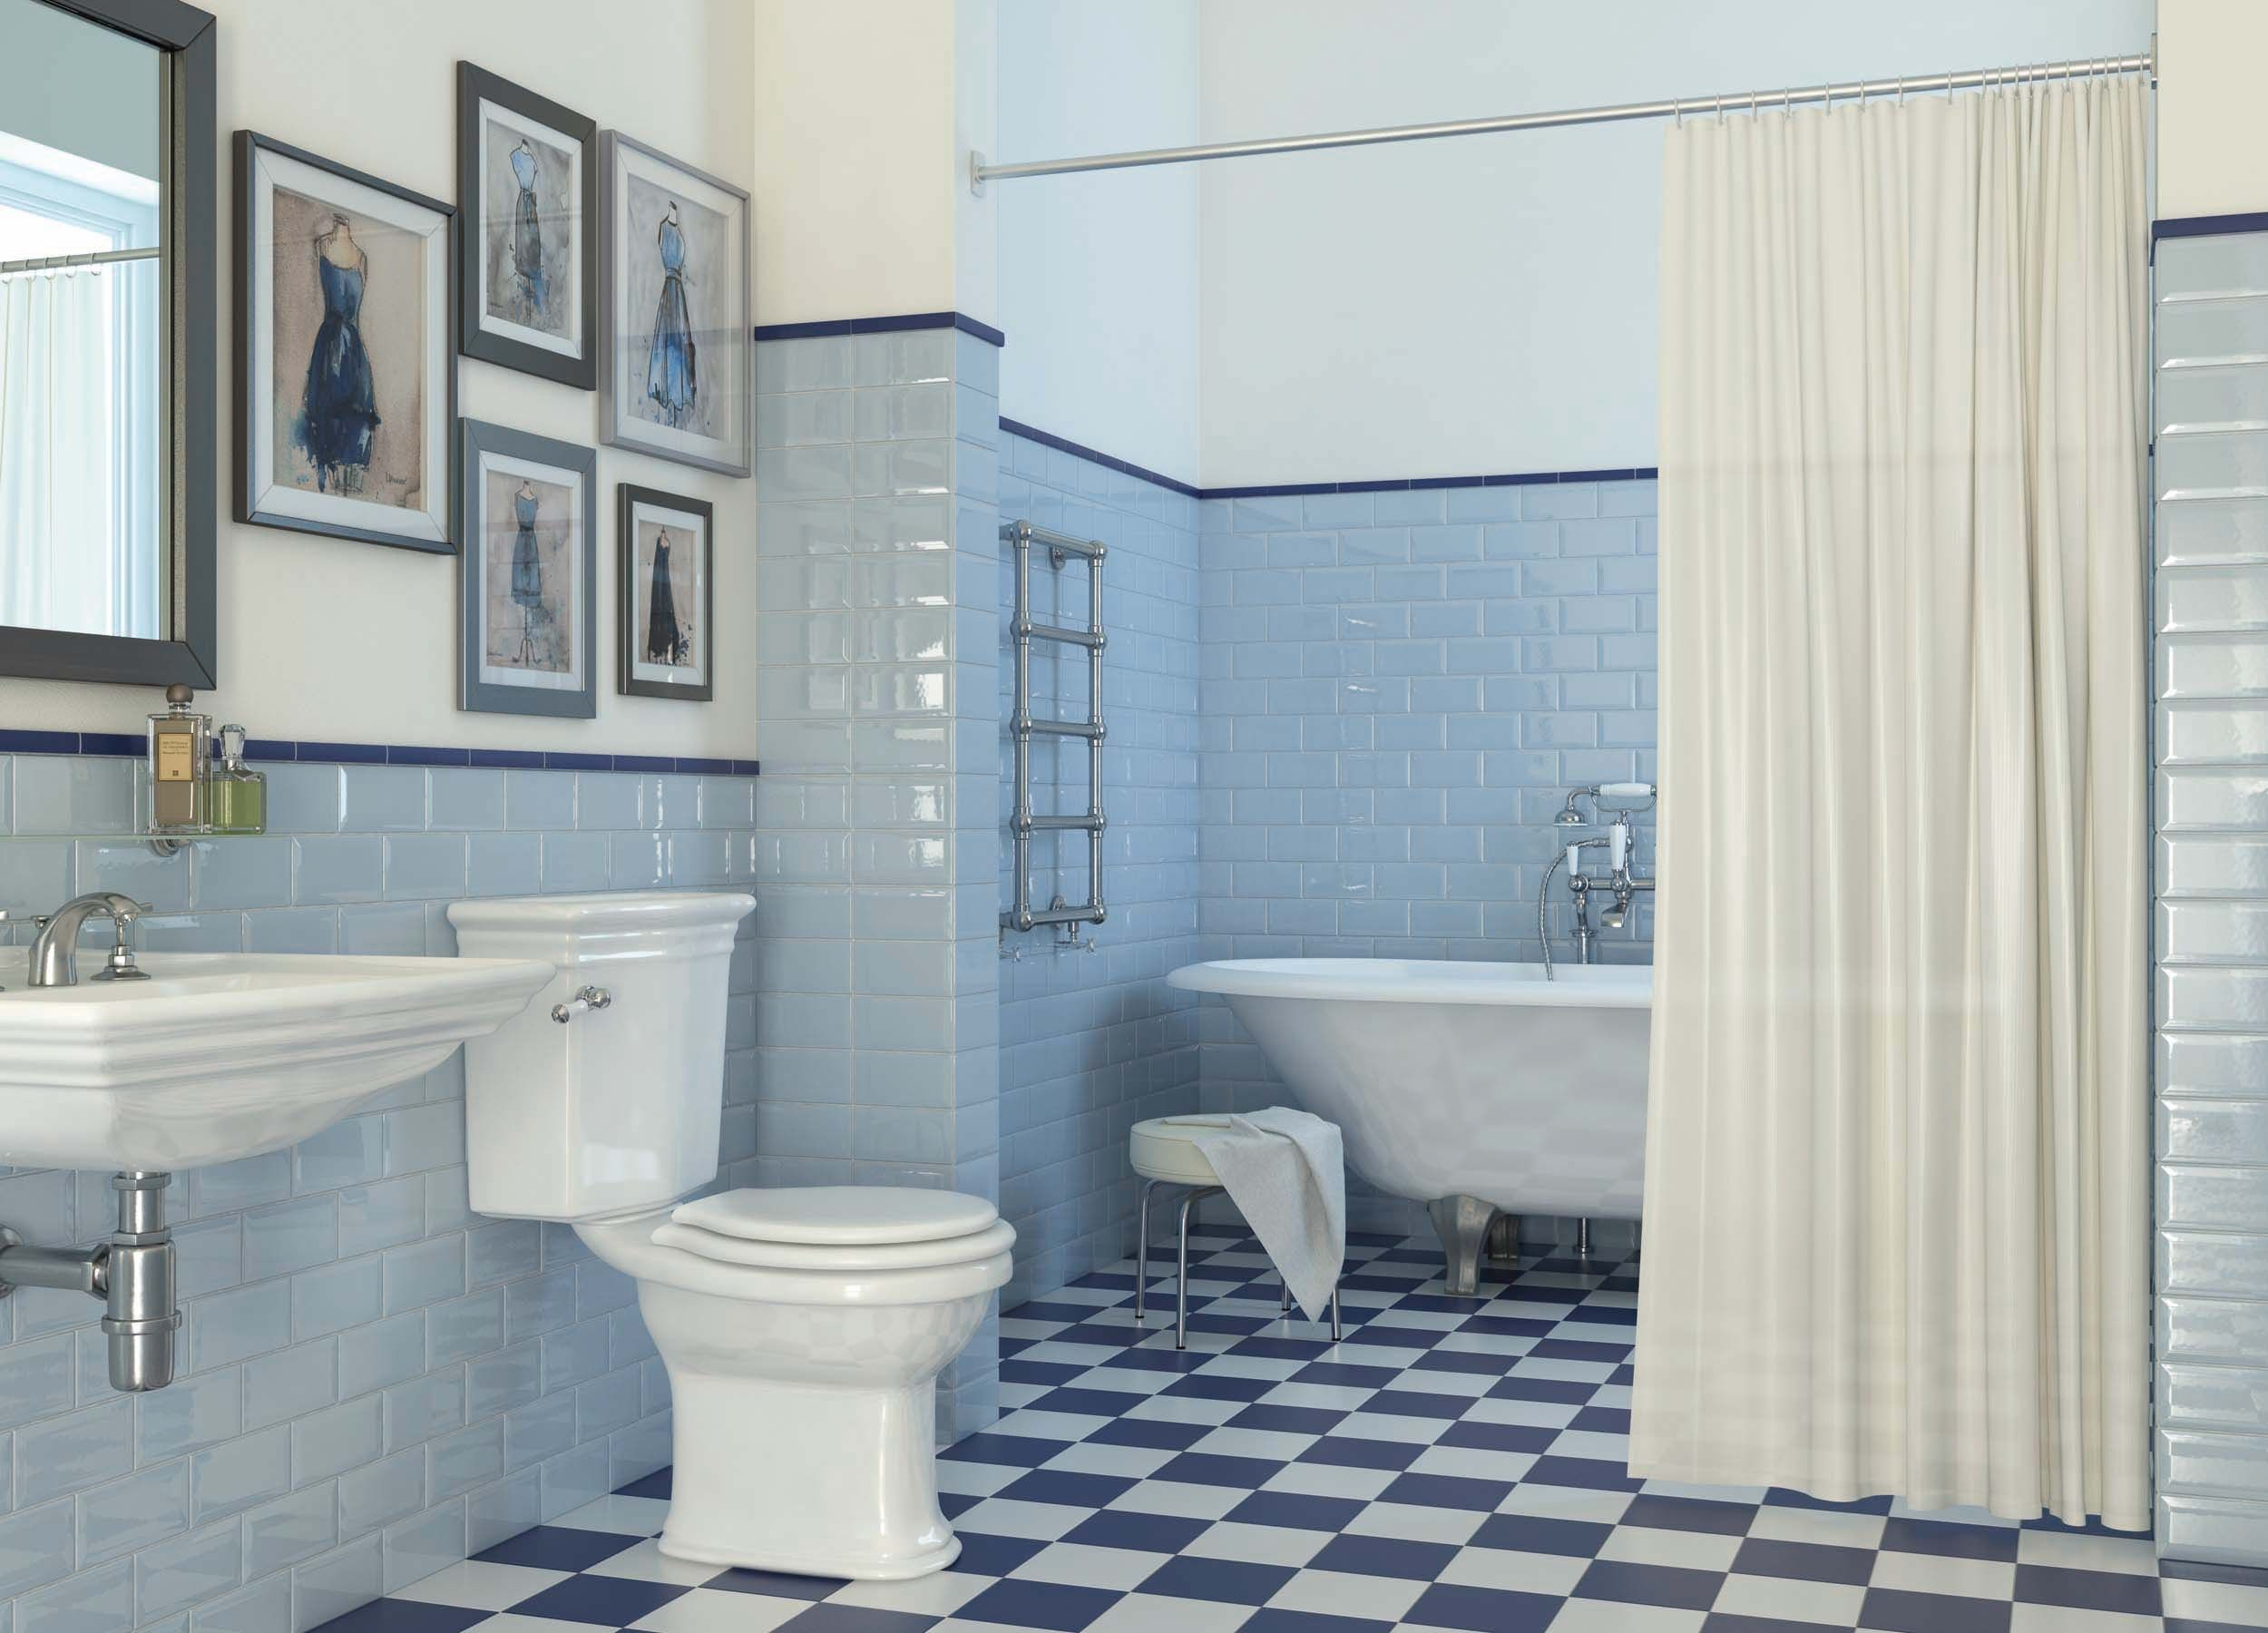 subway tiles with azulejos - Google Search | azulejos | Pinterest ...